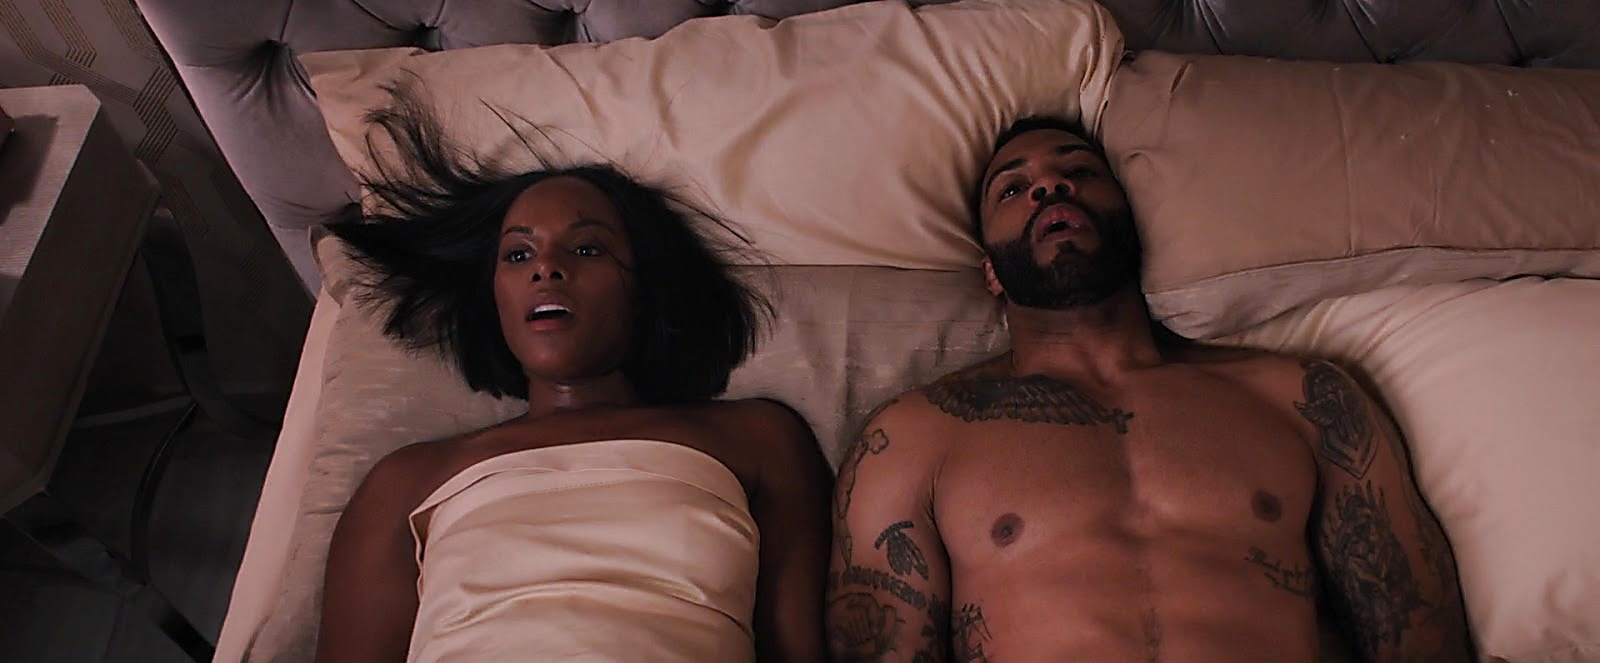 Omari Hardwick sexy shirtless scene January 30, 2019, 10am